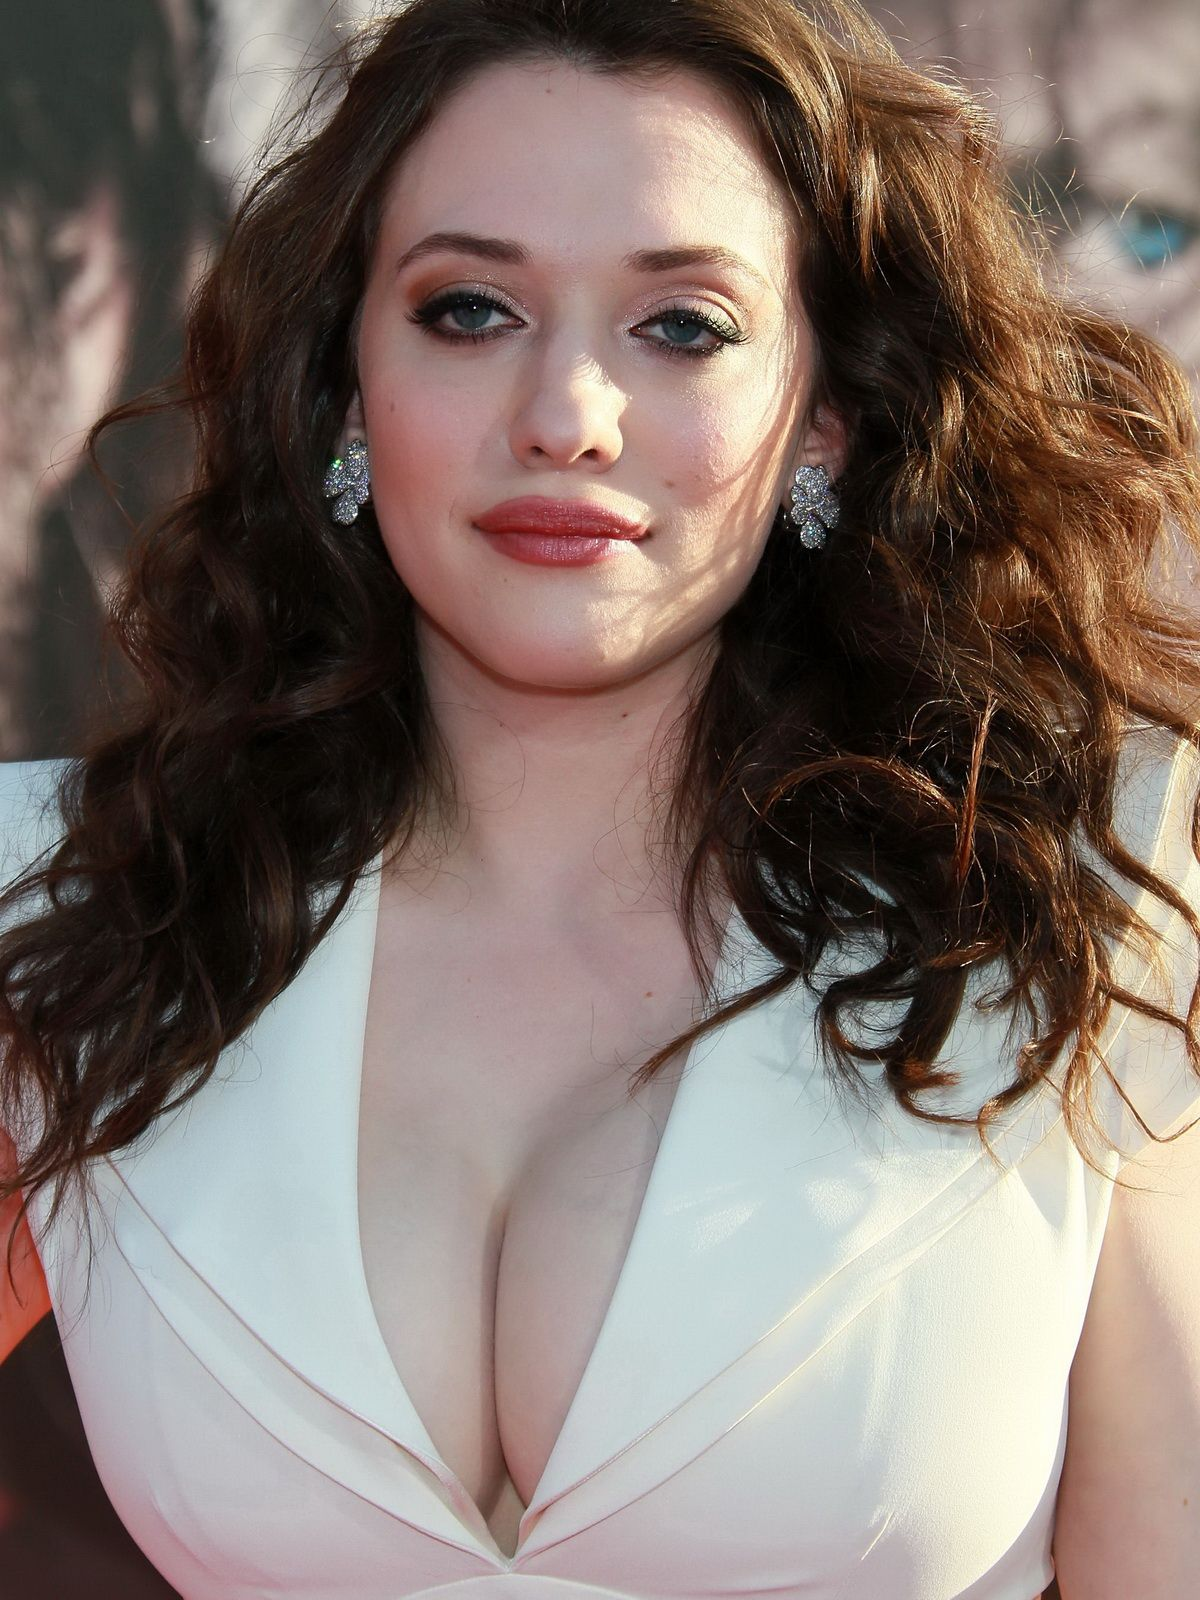 cleavage dennings Hot kat